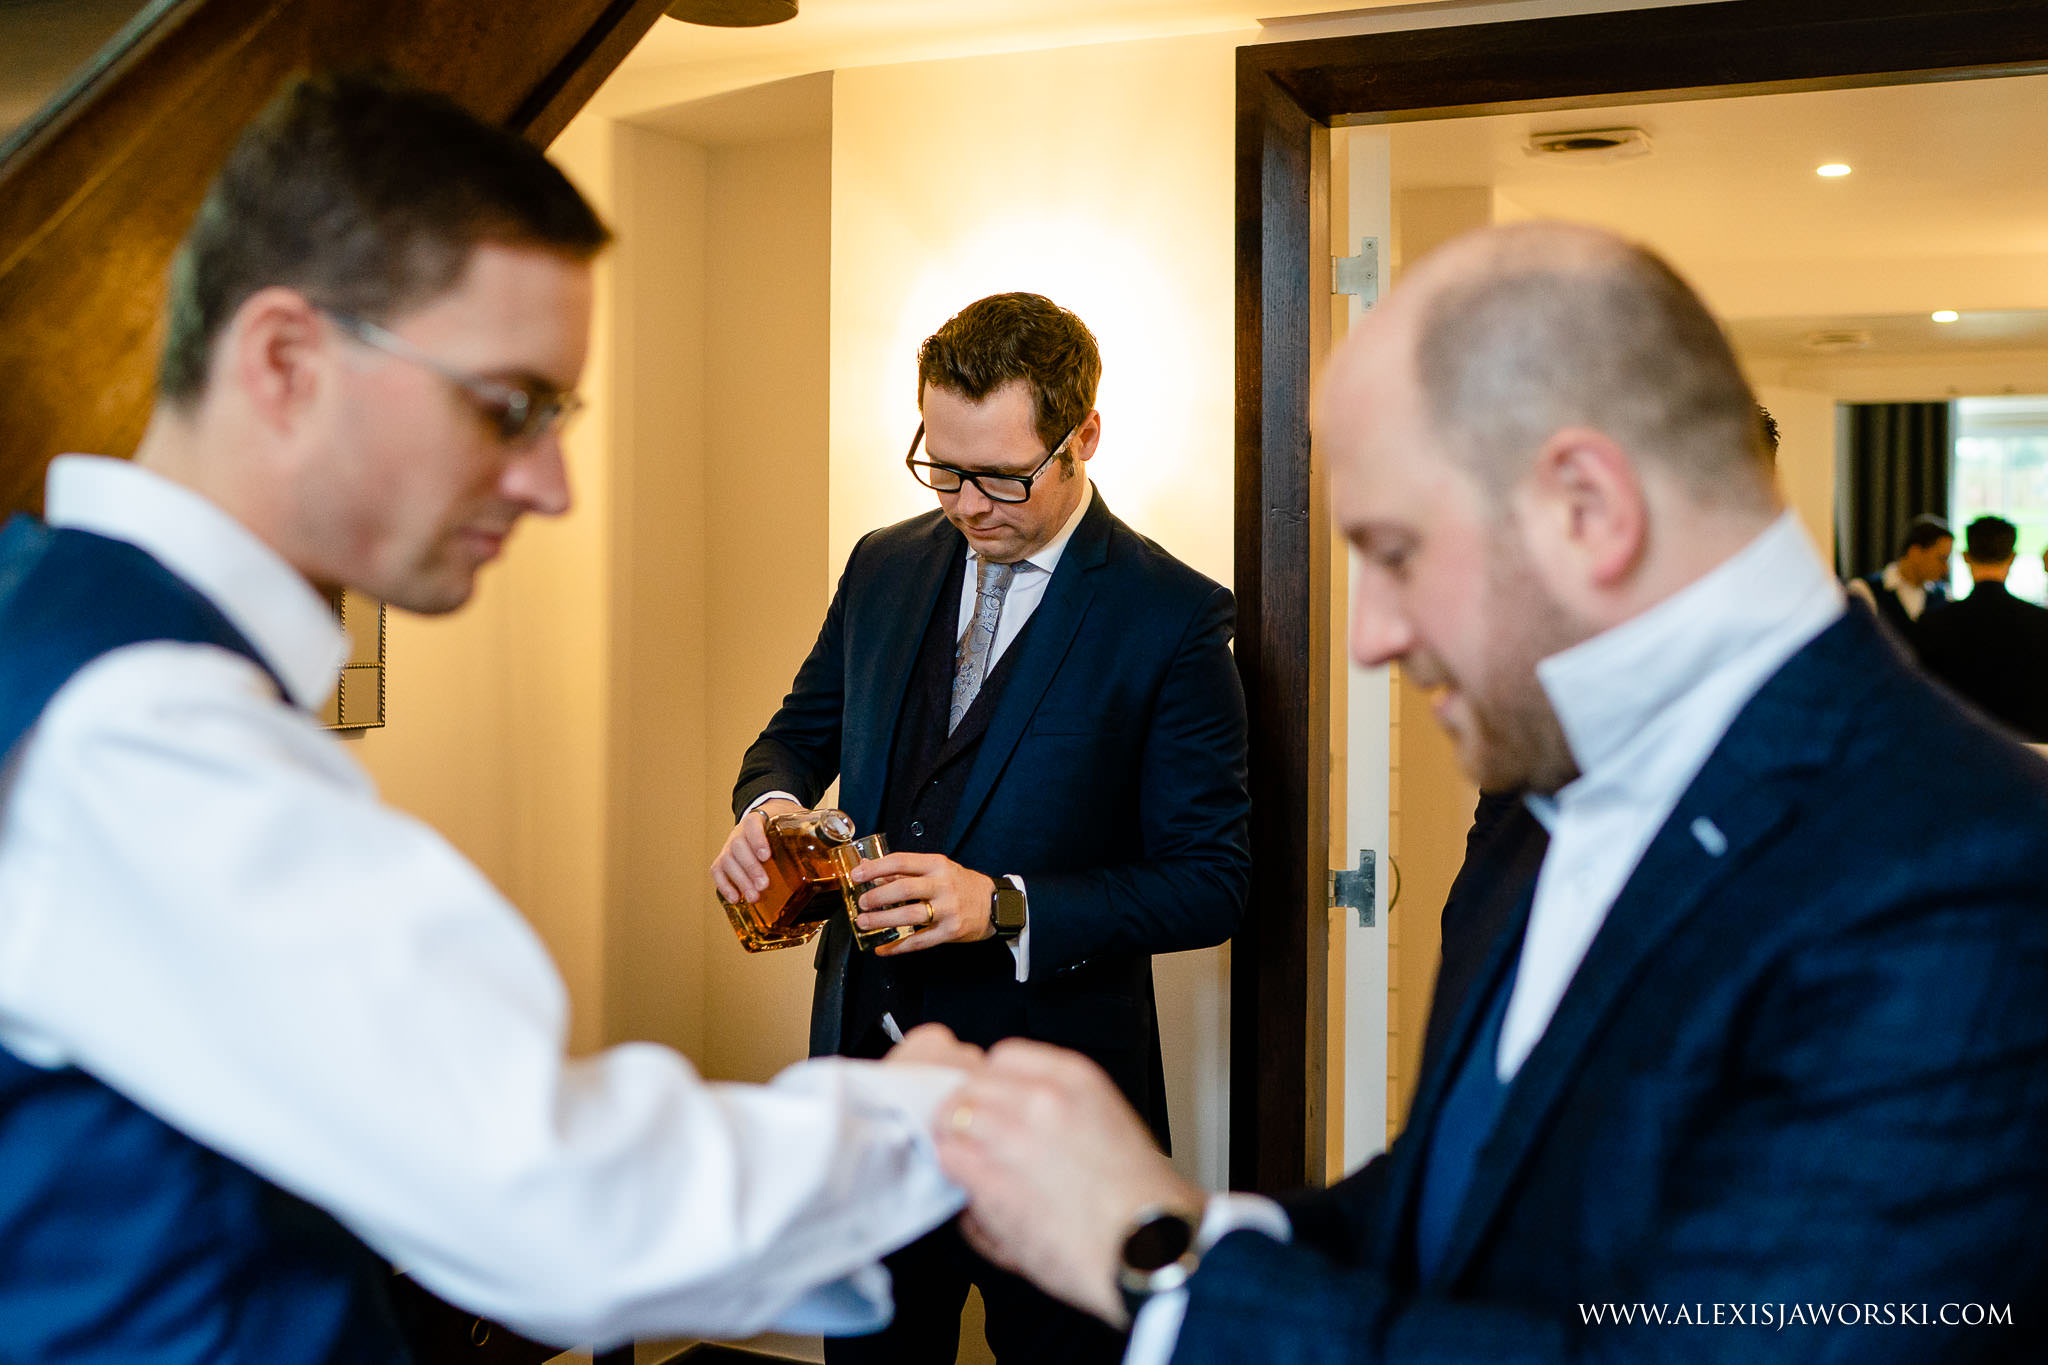 pouring whiskey for the groom